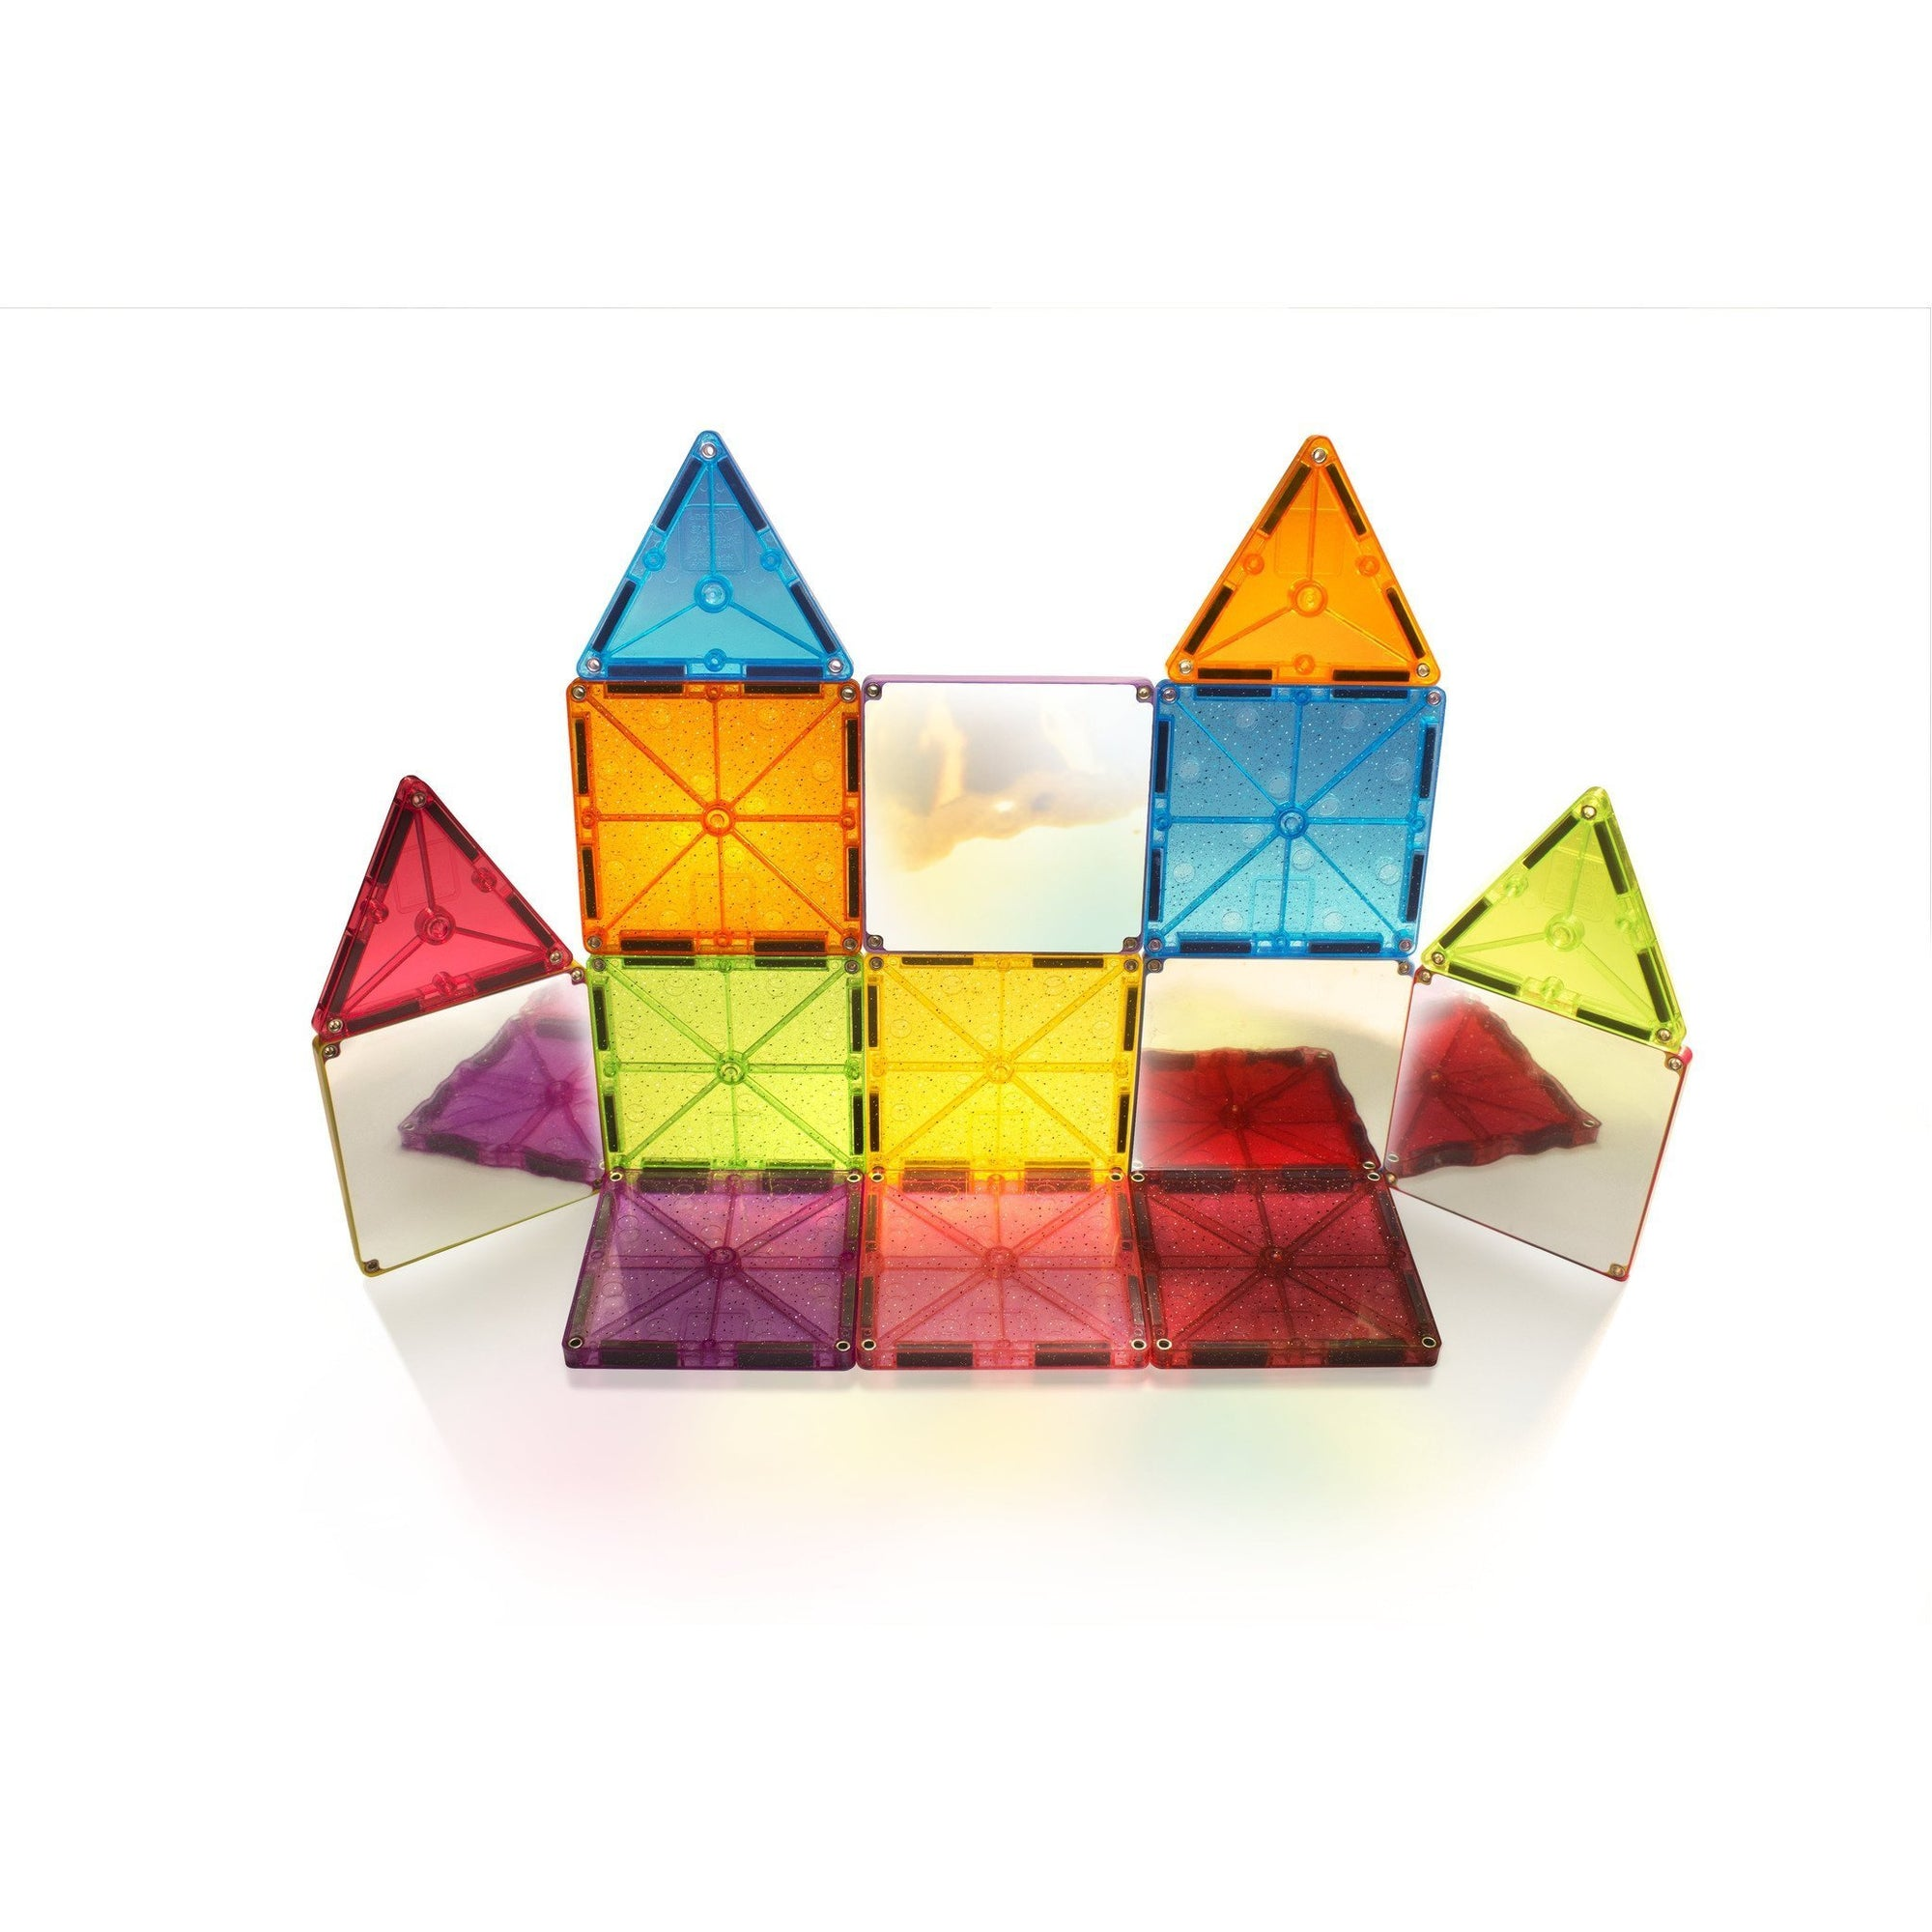 15 Piece Stardust Magna-Tiles - MagnaTiles - Hugs For Kids